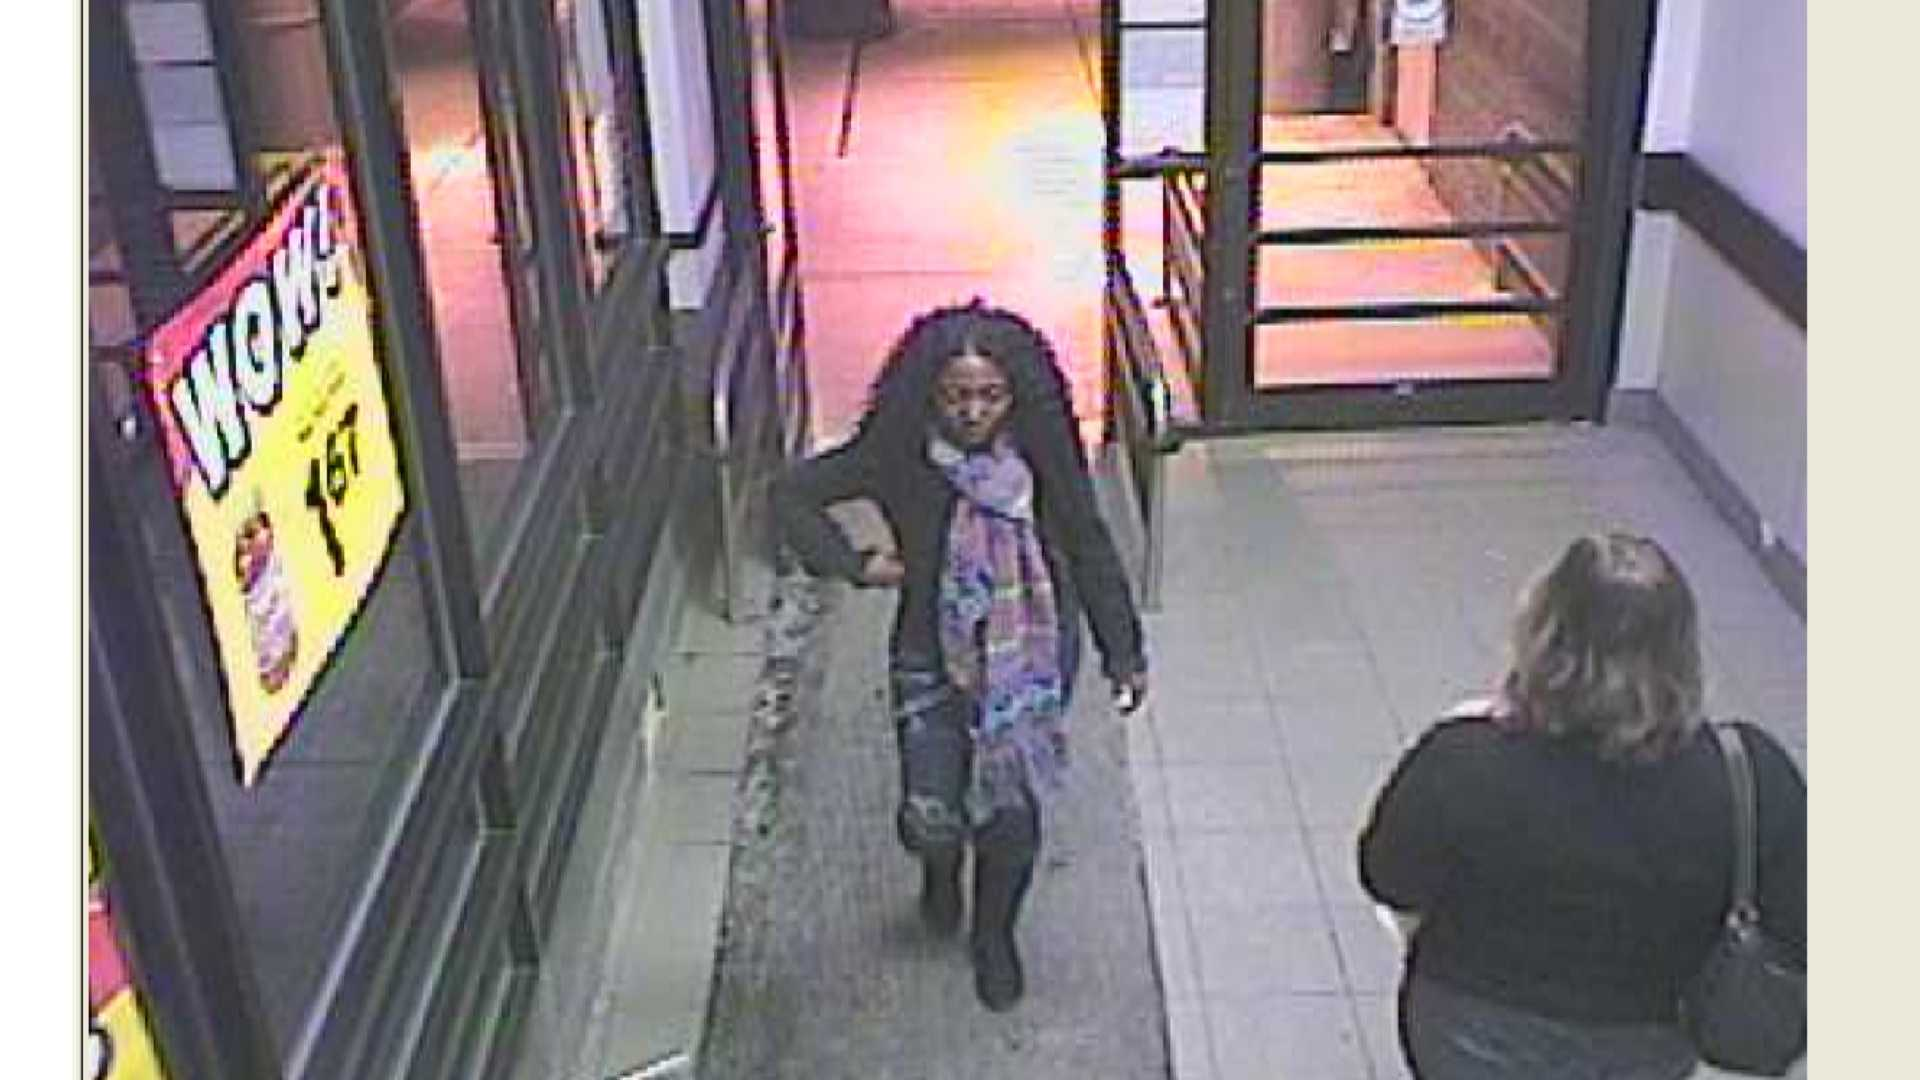 Williston Police released this photo of a woman they said charged $800 to a stolen credit card. Anyone with information is asked to call police at 802-878-6611.